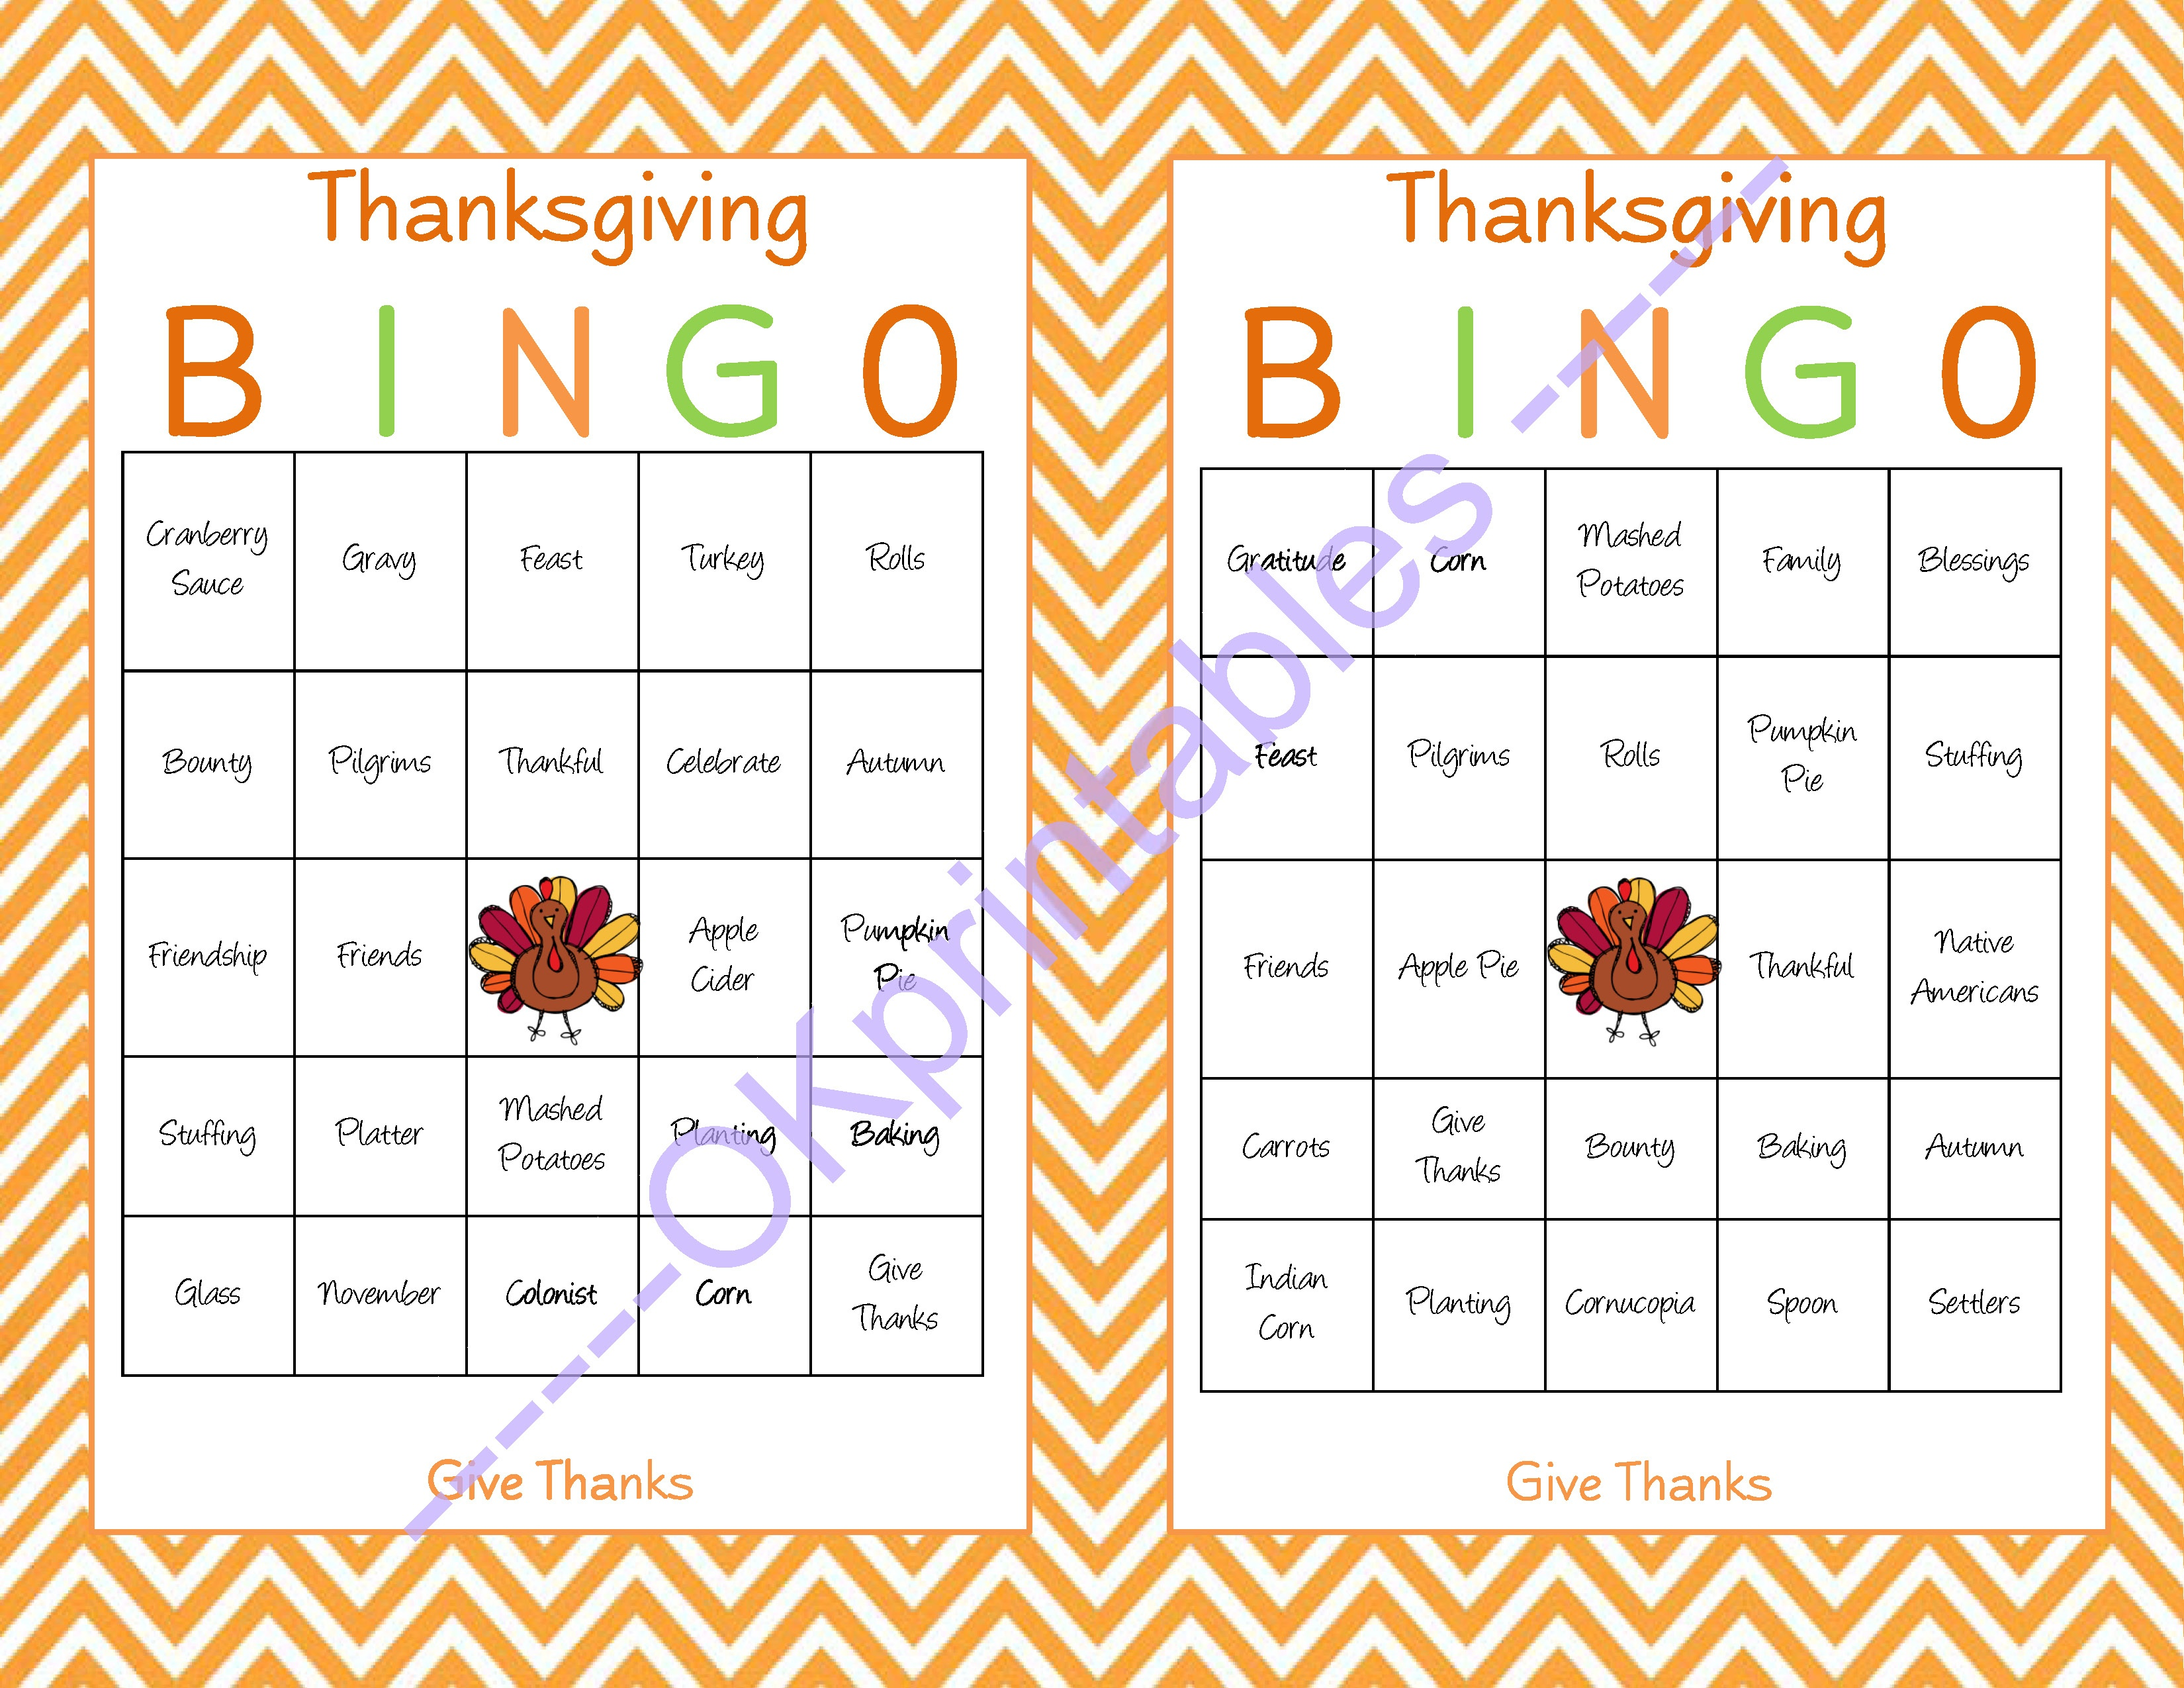 picture about Holiday Bingo Printable named Thanksgiving Bingo recreation - Family members video game - Family vacation